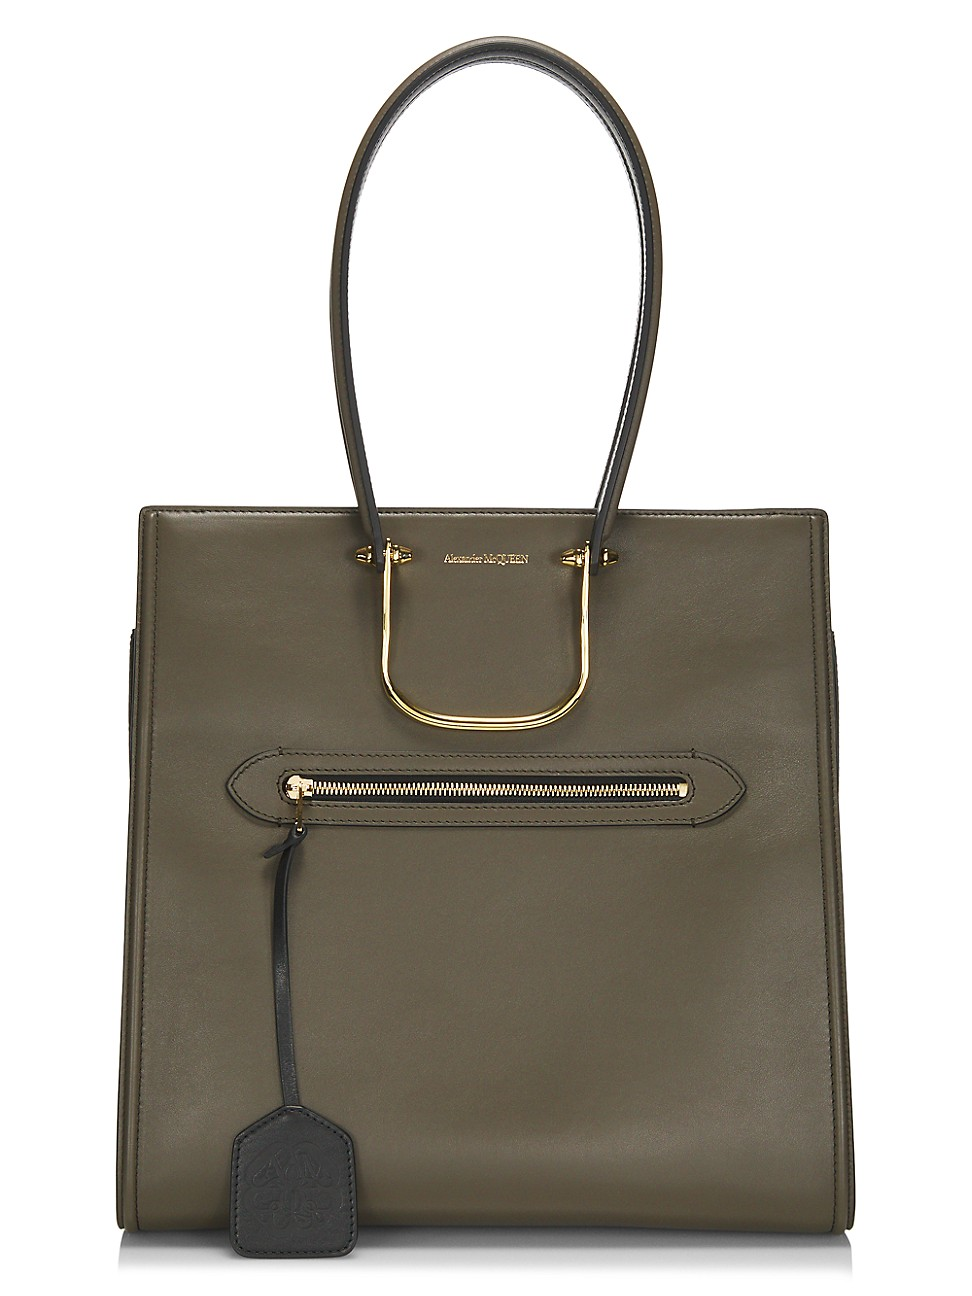 Alexander Mcqueen WOMEN'S THE TALL STORY LEATHER TOTE